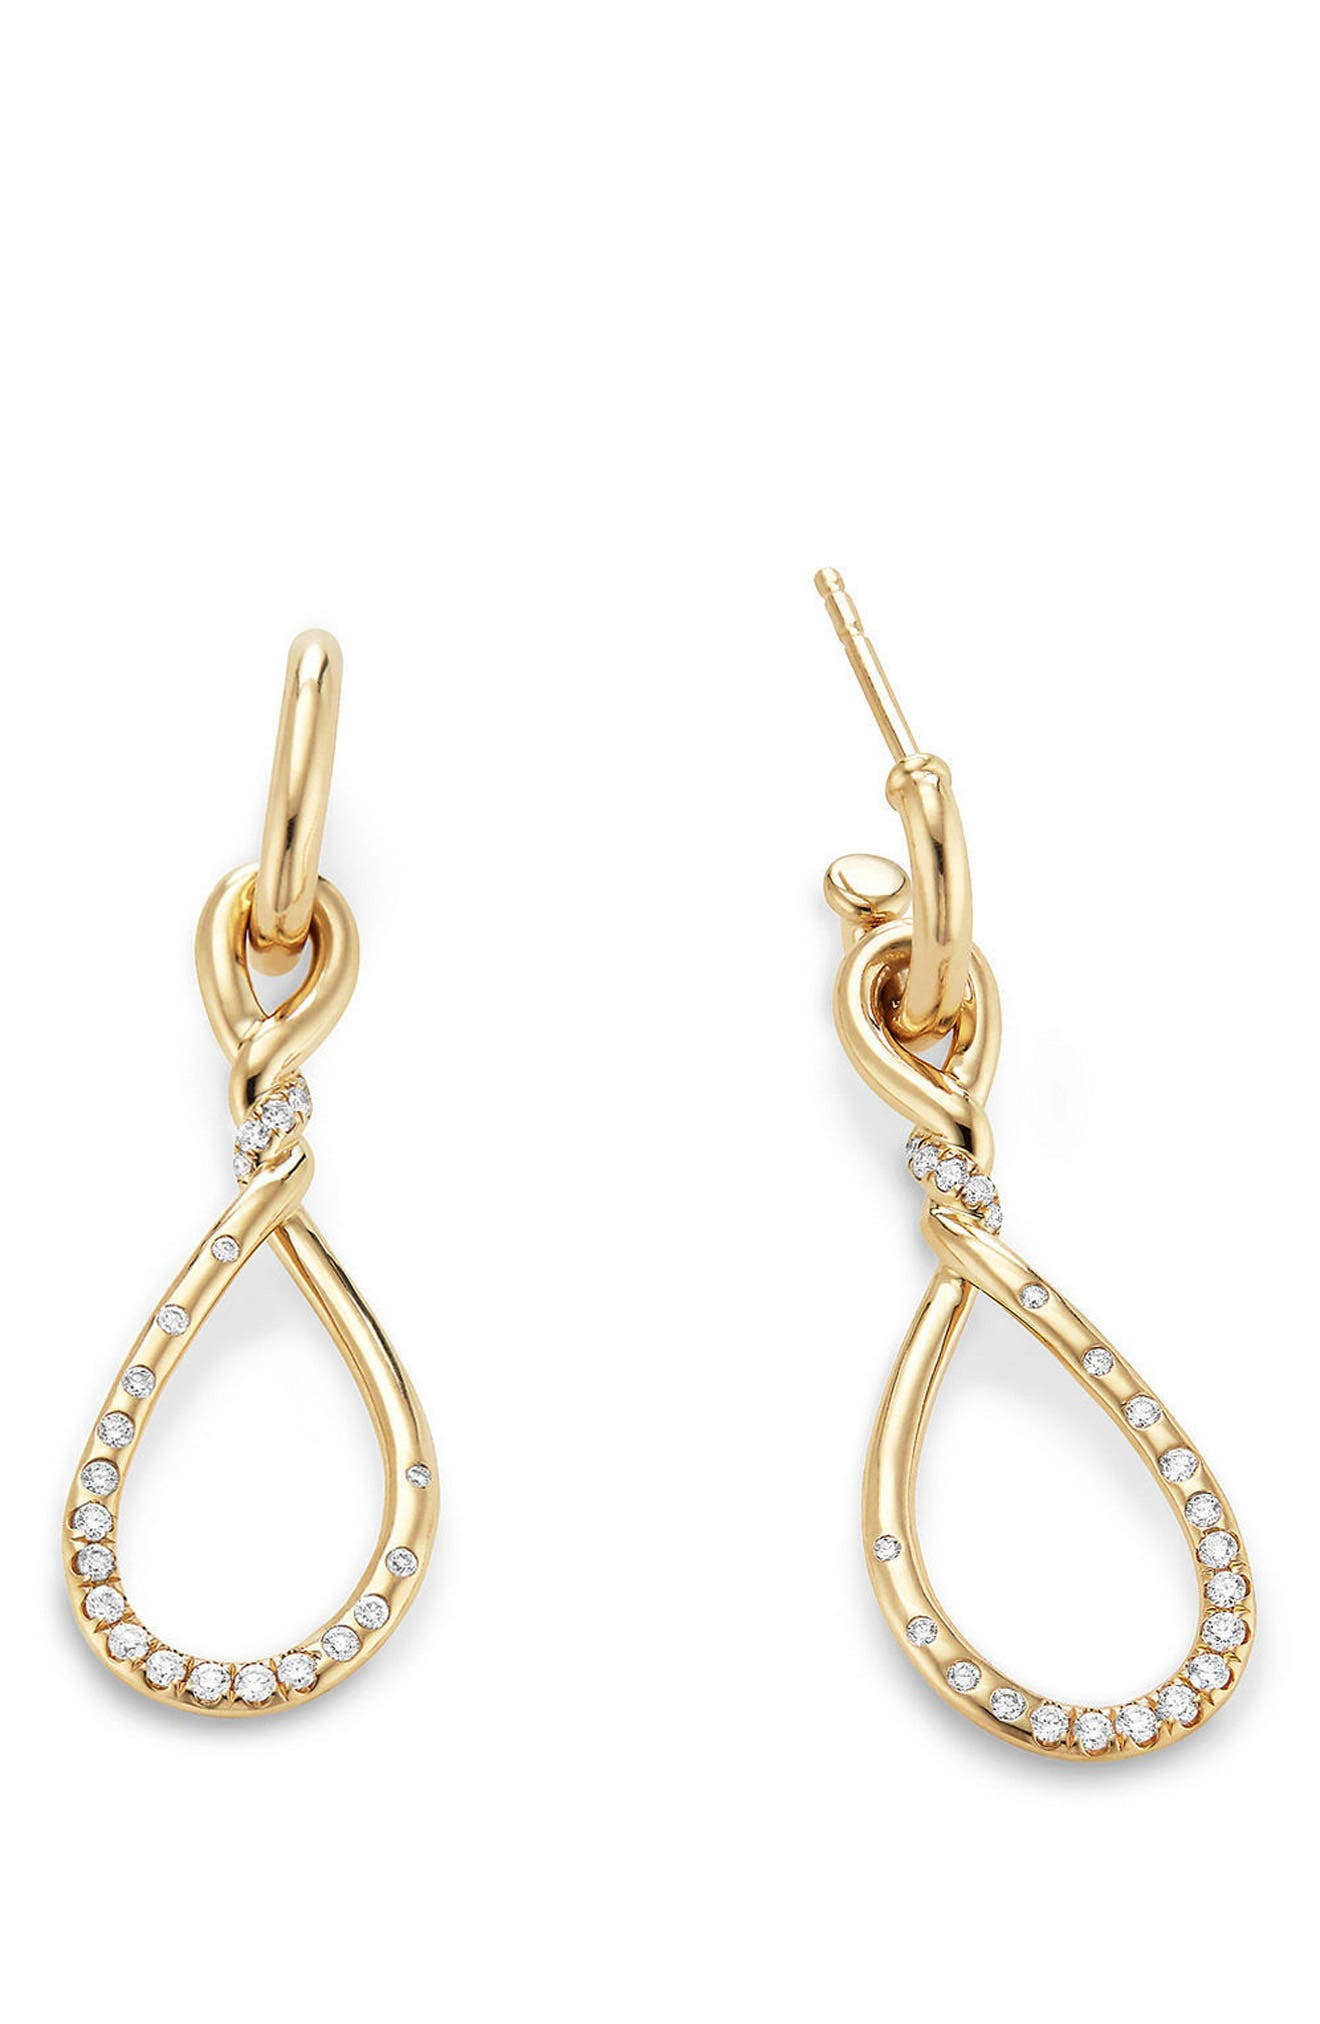 Continuance Medium Drop Earrings with Diamonds in 18K Gold,                             Alternate thumbnail 2, color,                             710